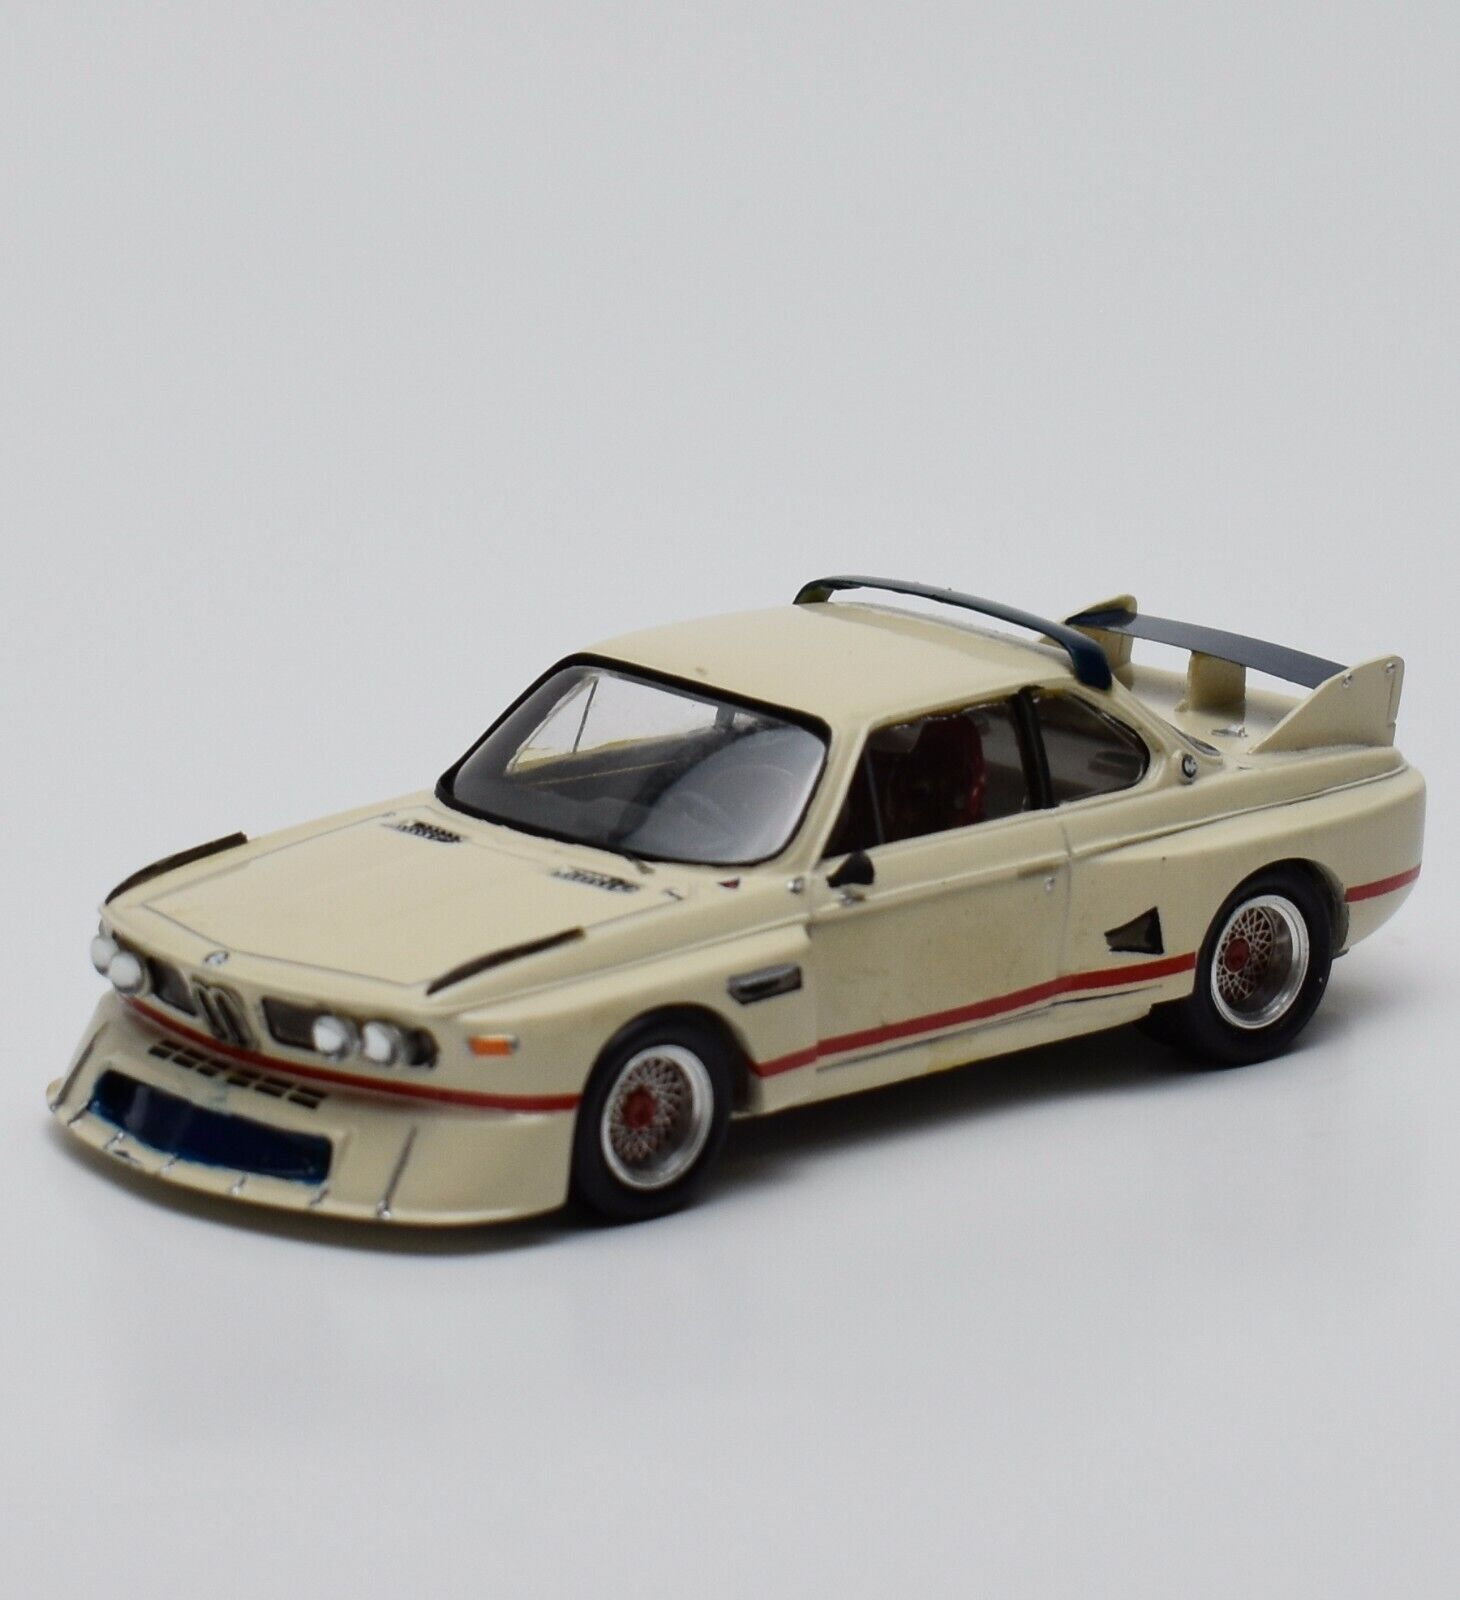 Provence Moulage BMW 3.5 CSL LEMANS 1976 in painted white, 1 43, V002